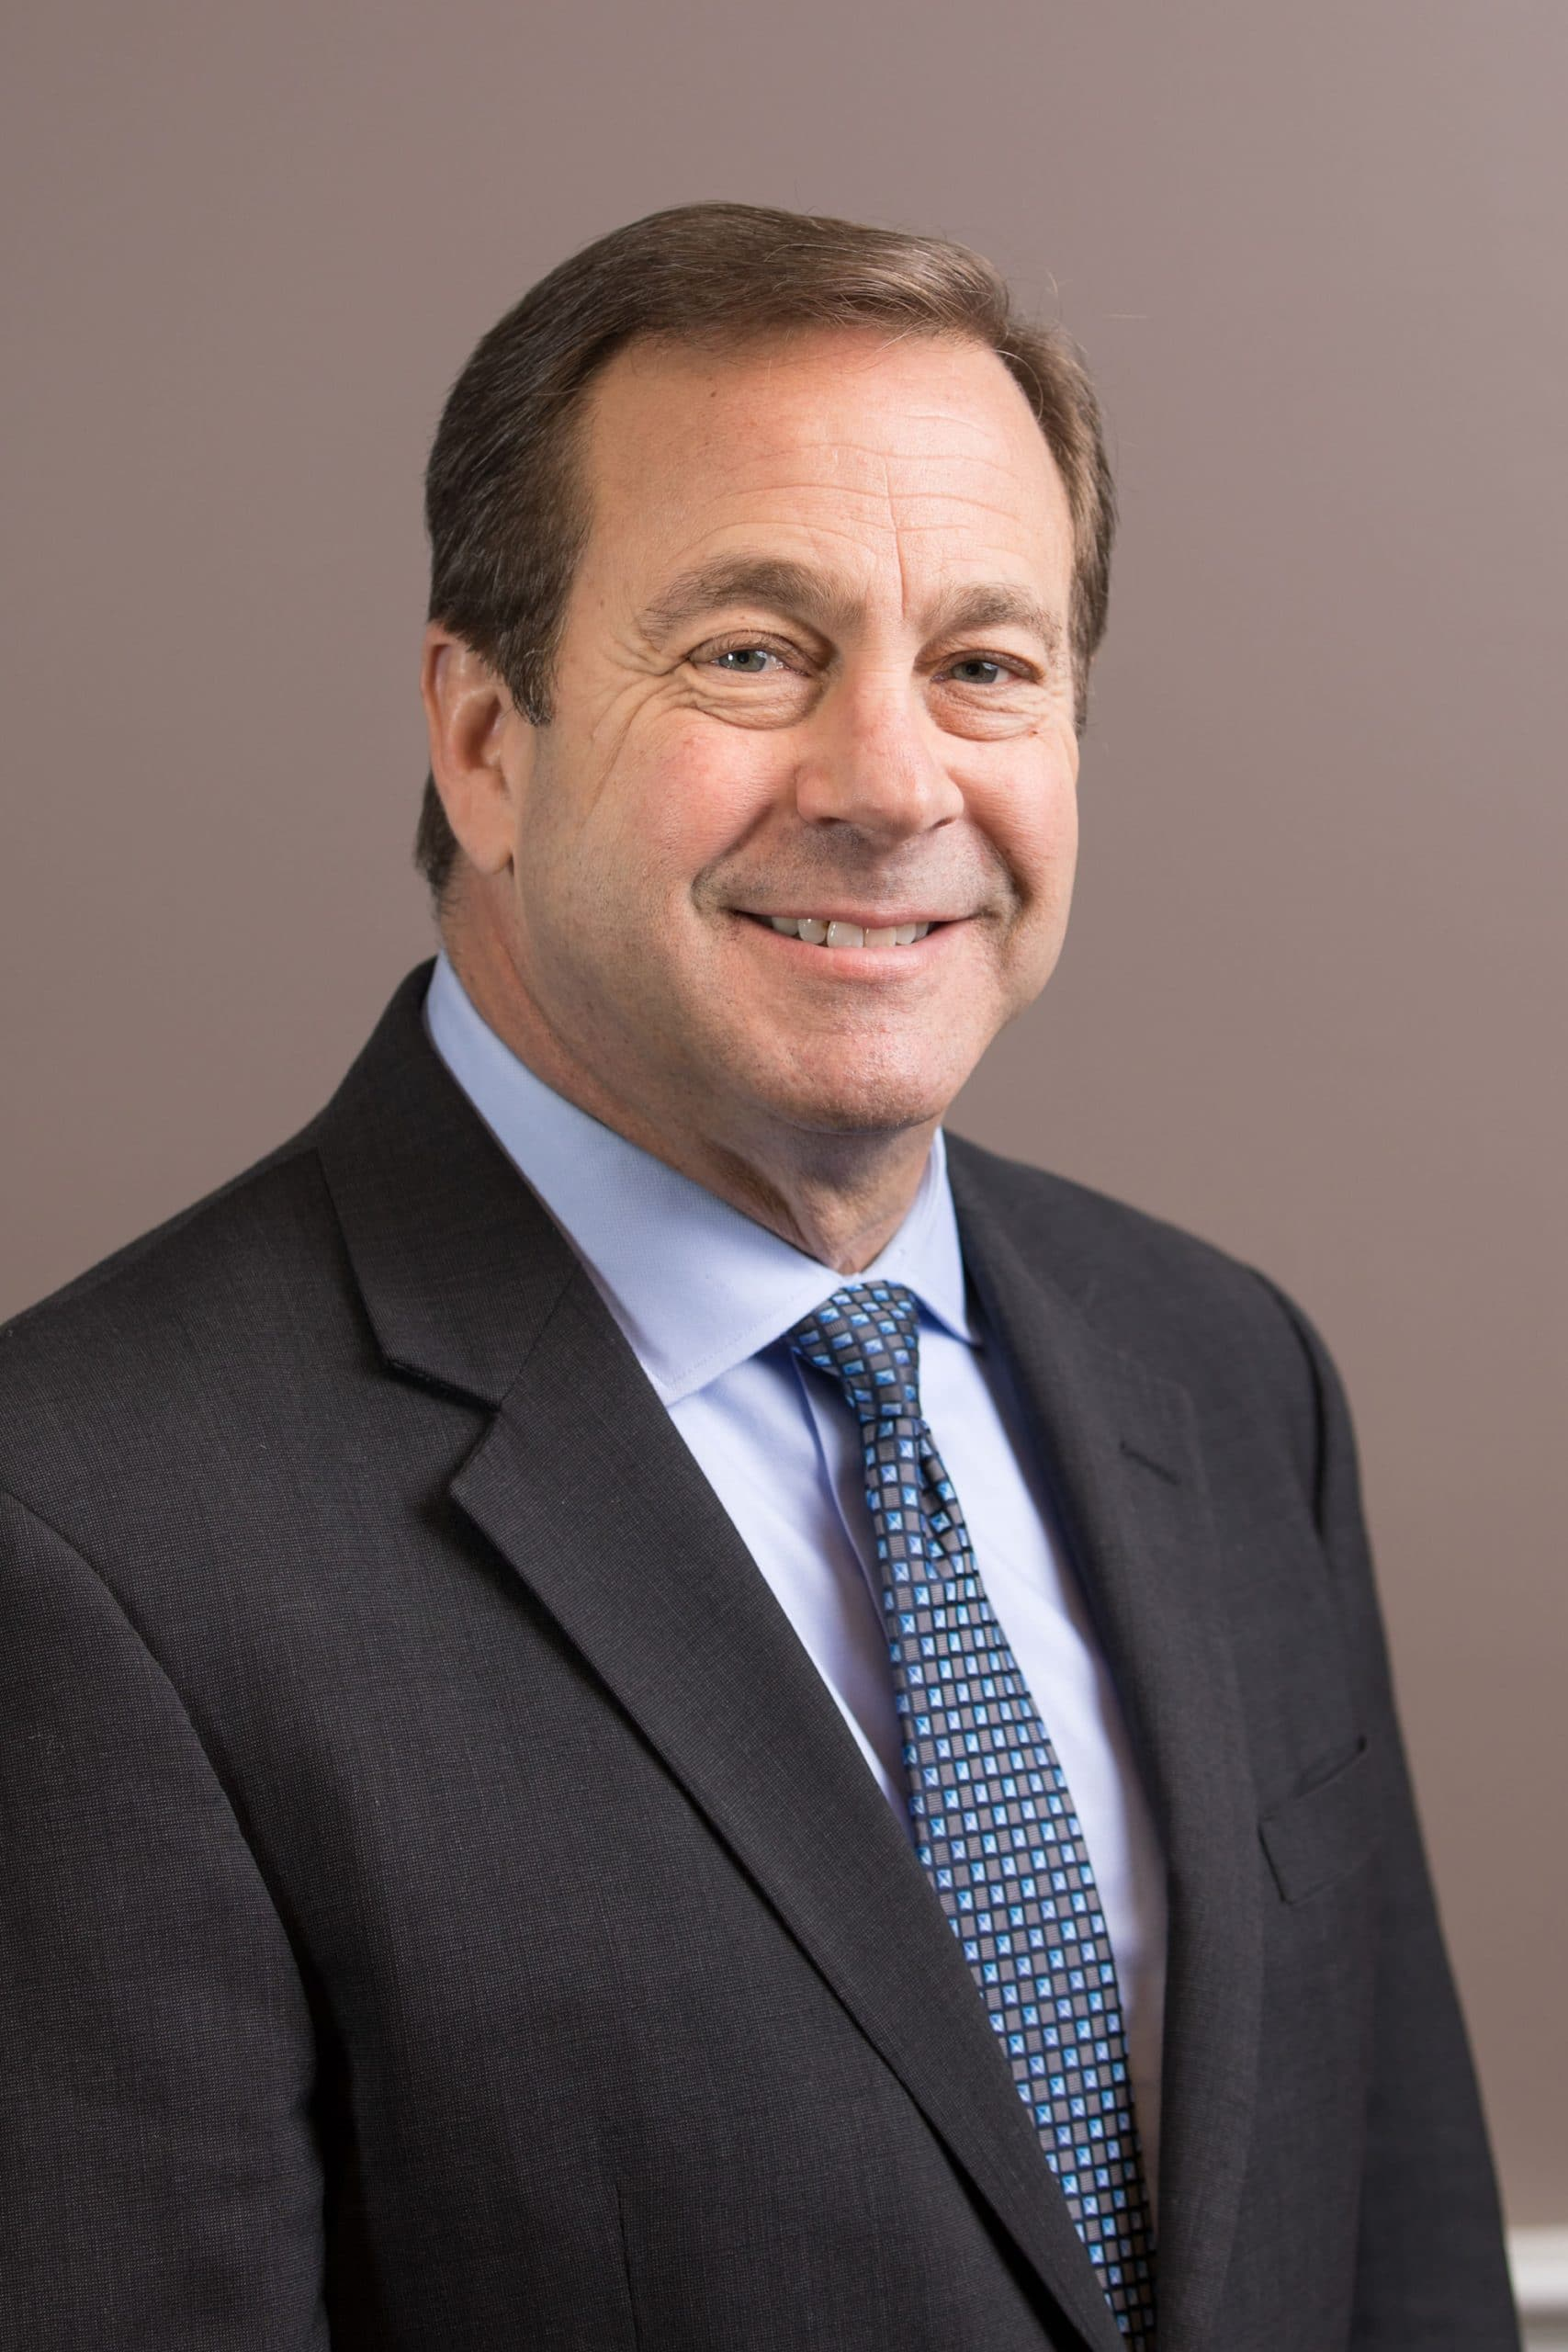 Lou Cappelli to Speak at the 6th Annual City of Camden….A Growing Economic Force!